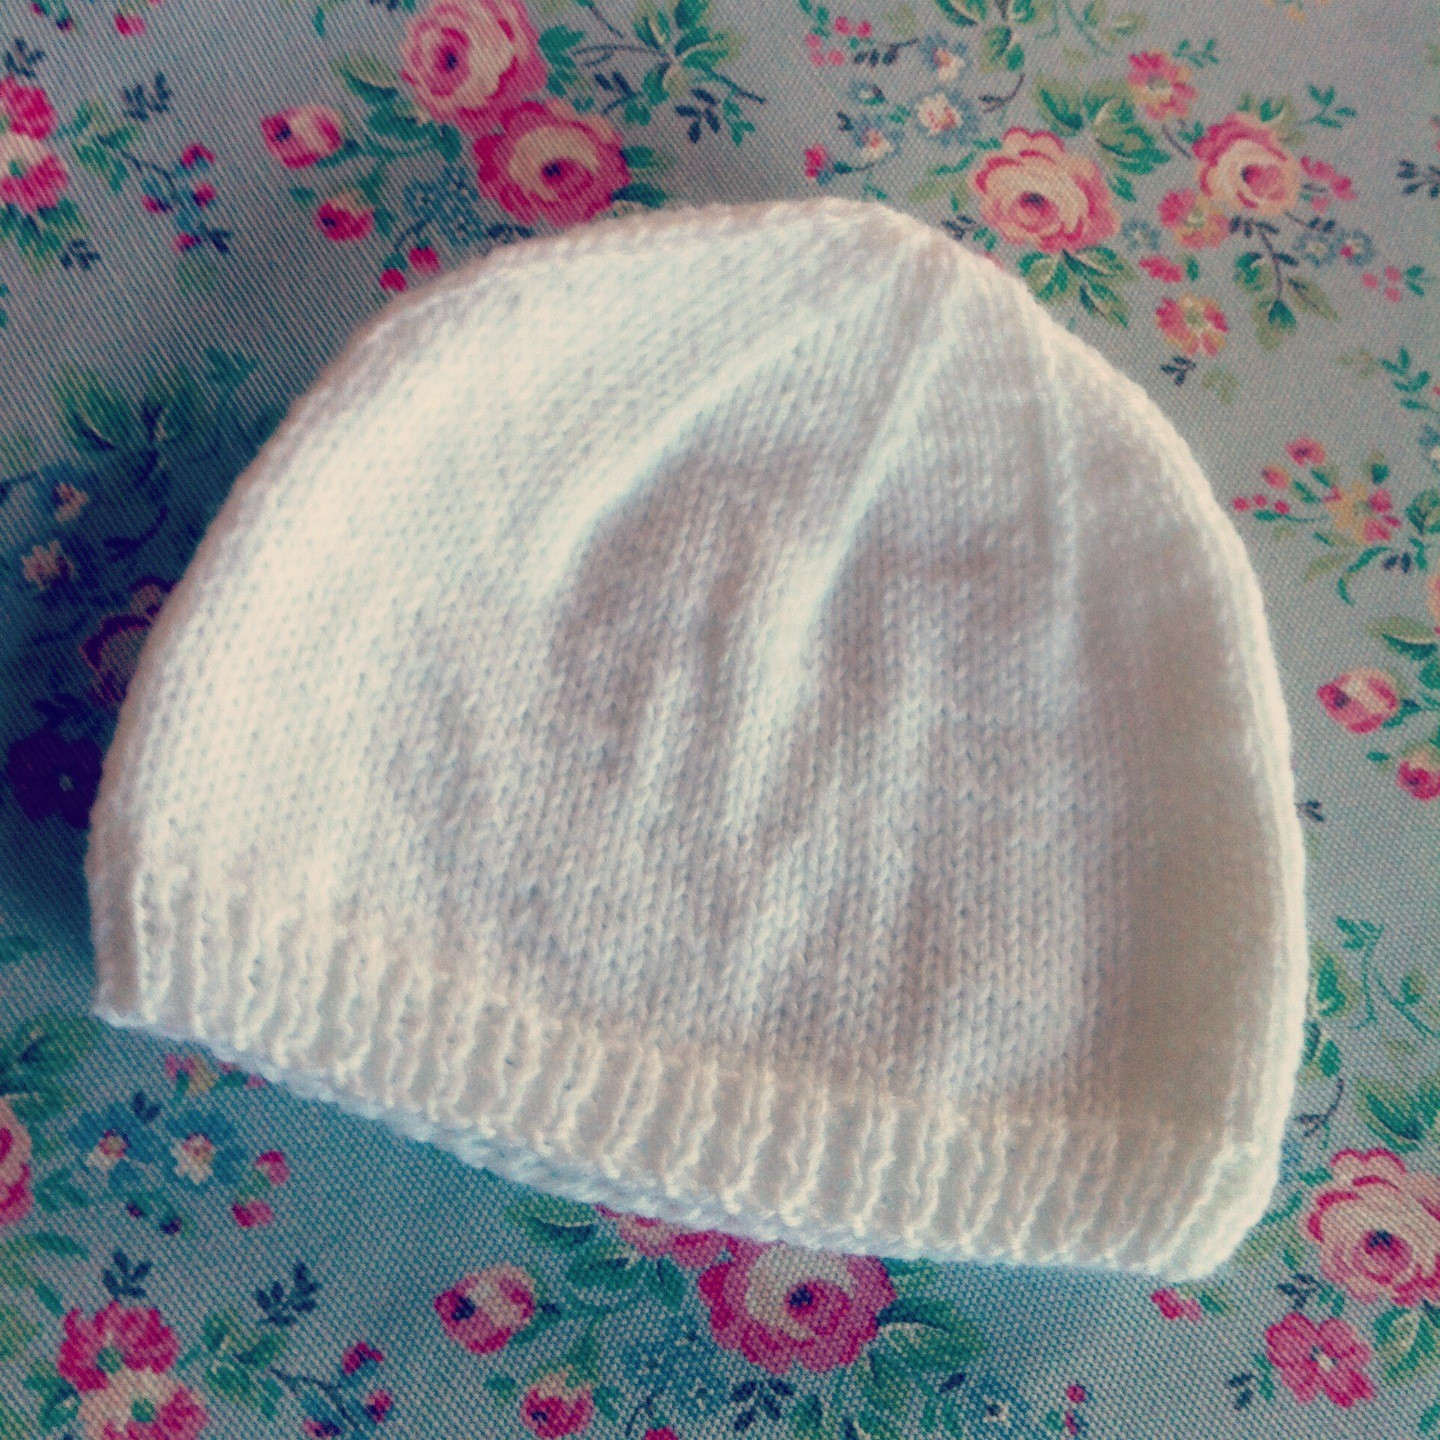 Free Knitting Patterns for Baby Hats Inspirational Easy Knitting Patterns for Baby Hats Beginners Of Perfect 44 Models Free Knitting Patterns for Baby Hats